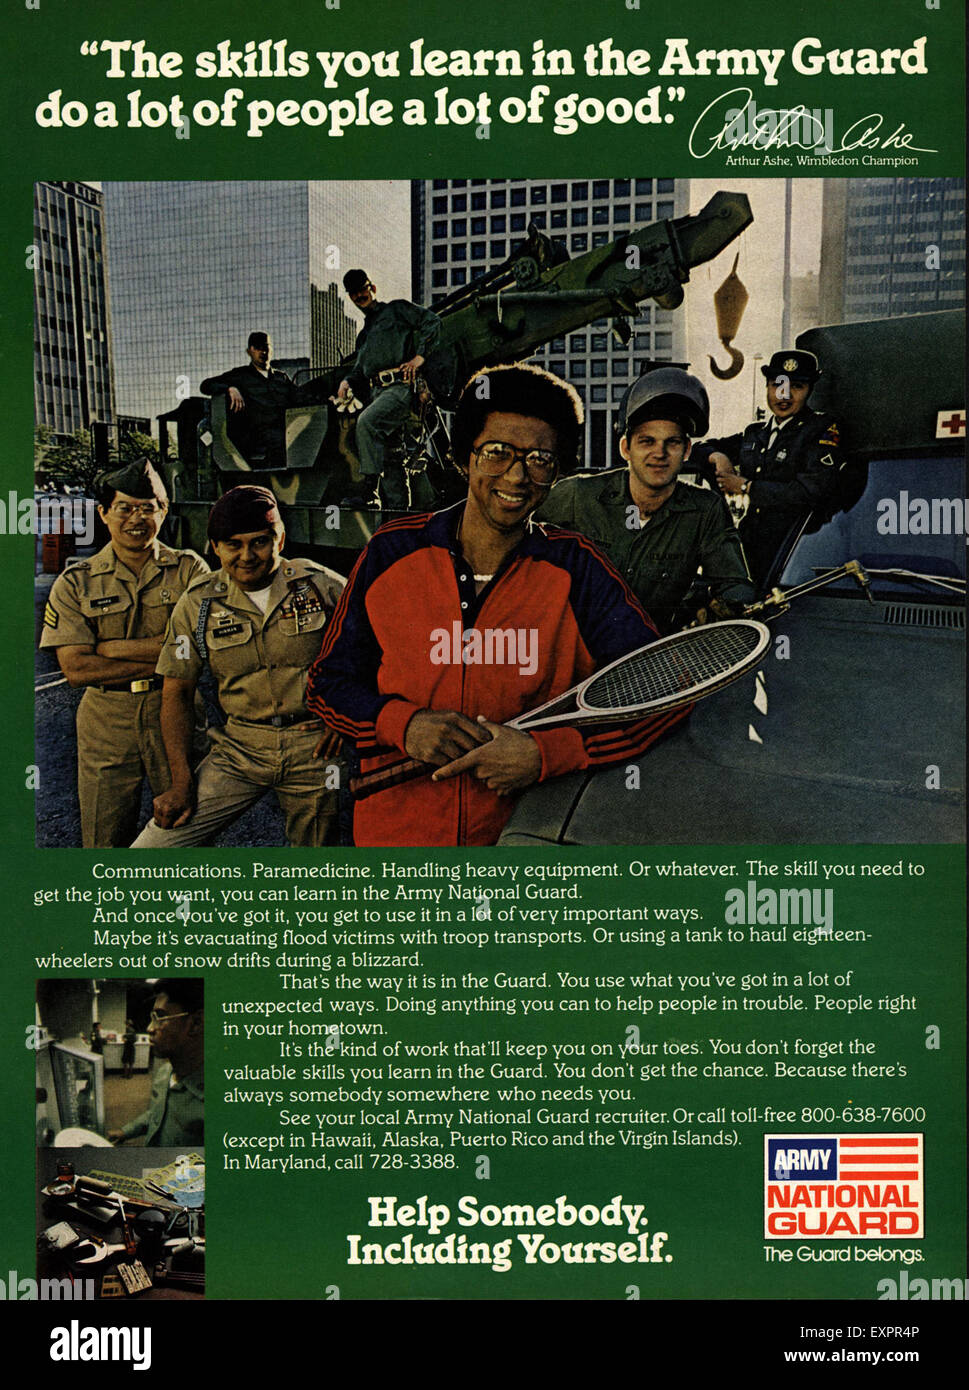 1980s USA Army National Guard Magazine Advert - Stock Image